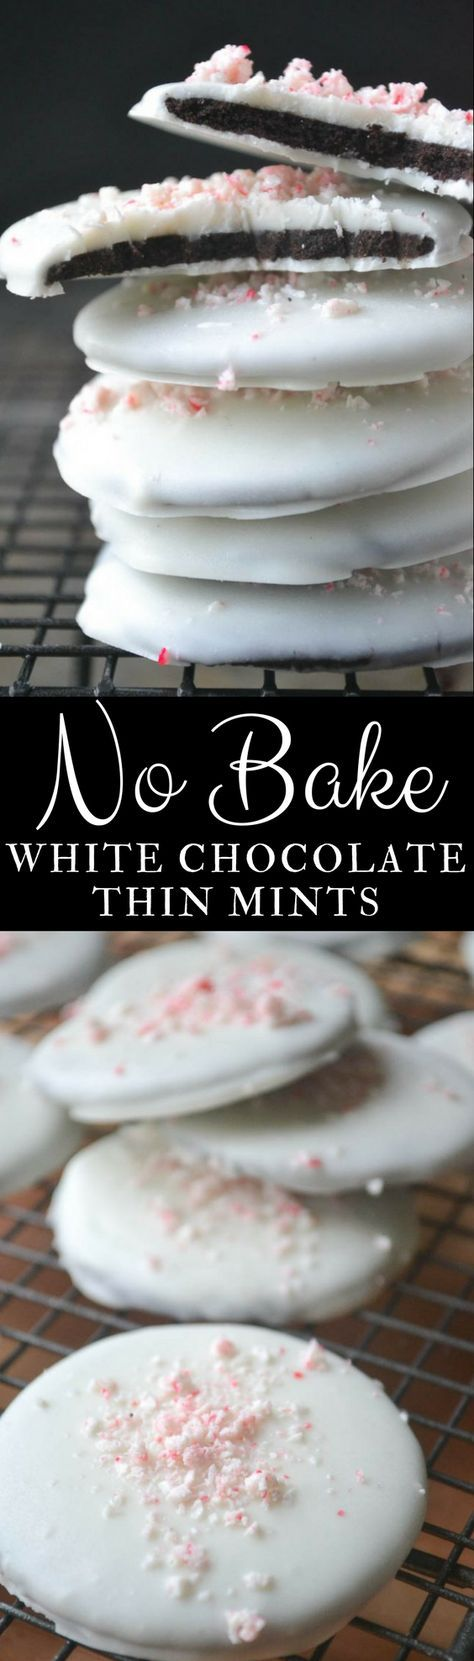 Easy No Bake White Chocolate Thin Mints ~ just four simple ingredients is all it takes to make these divine minty cookies!